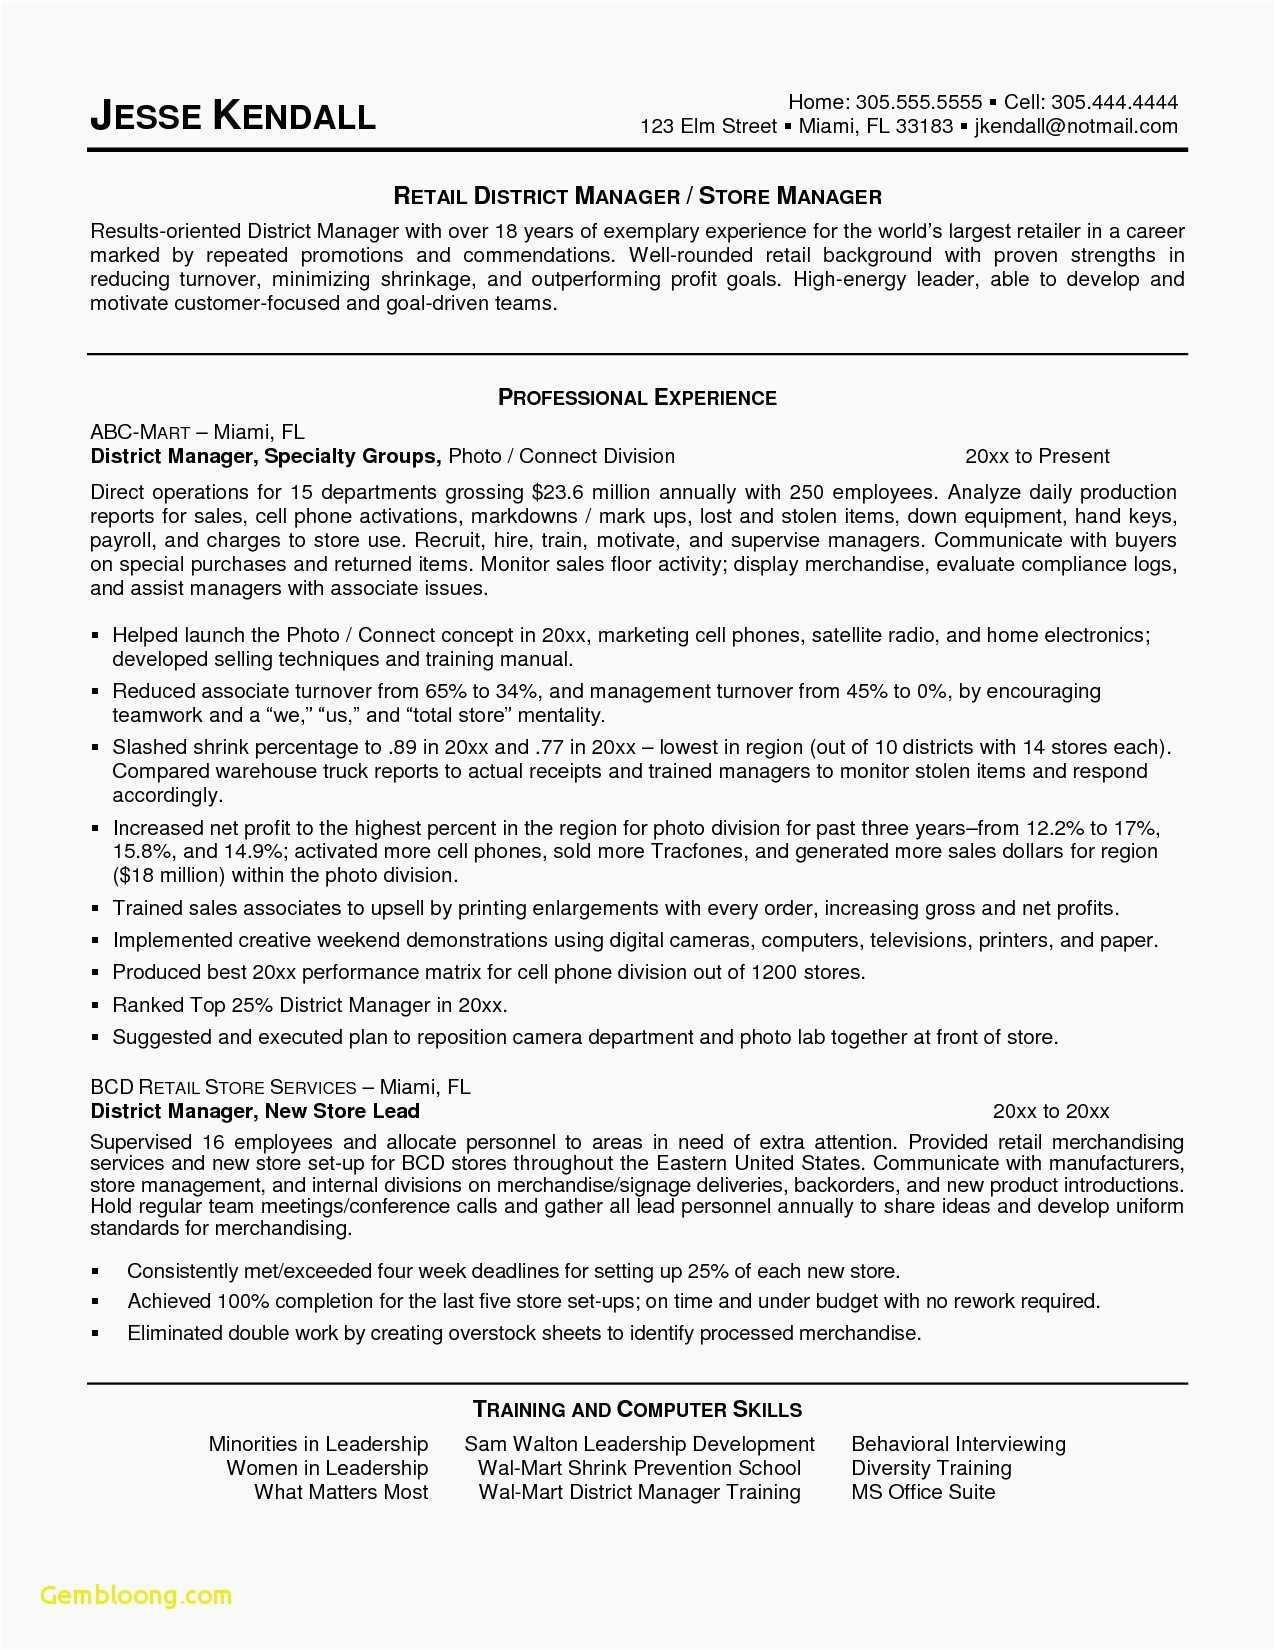 Resume Printing Near Me - 21 How to Write A Resume Skills Gallery